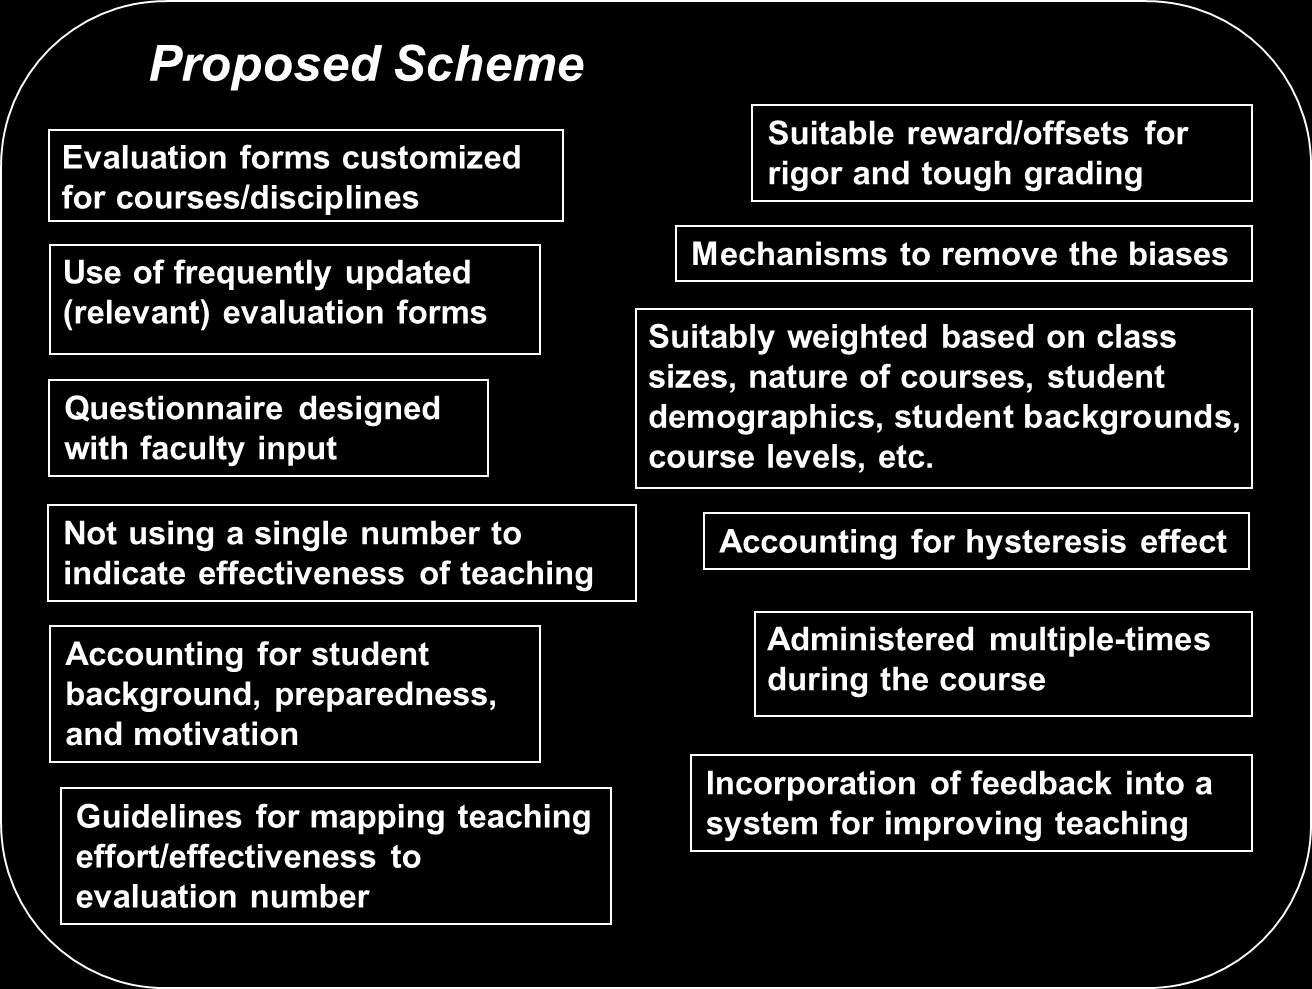 Figure 5. A summary of the major characteristics and improvements of the proposed system.